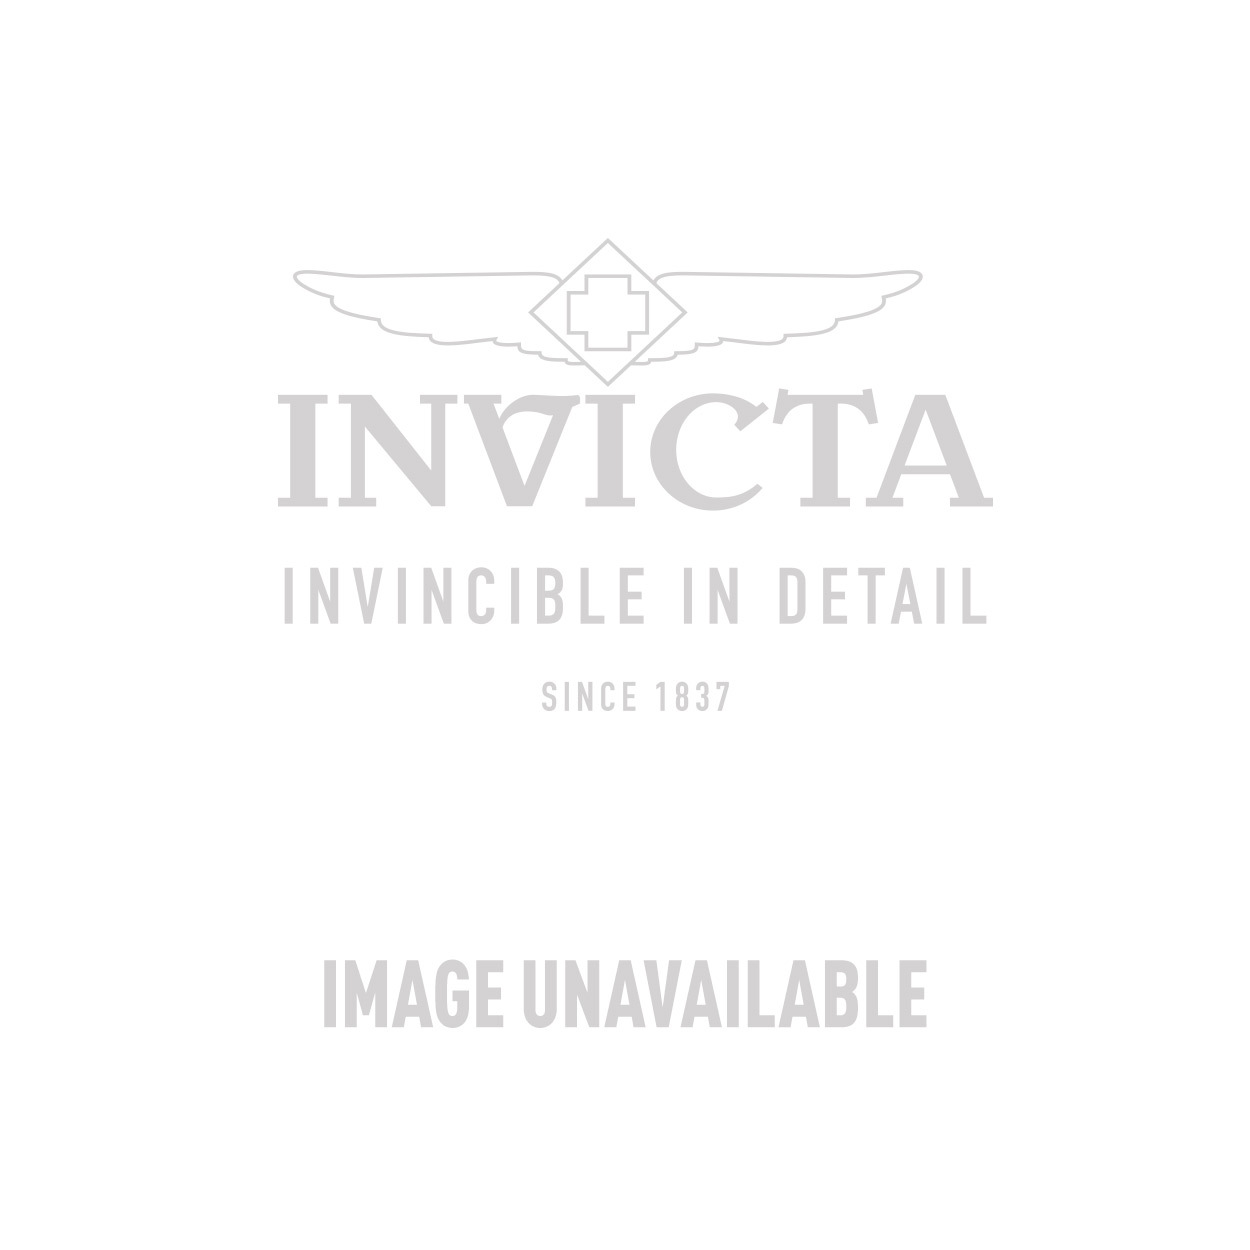 Invicta S. Coifman Swiss Movement Quartz Watch - Stainless Steel case Stainless Steel band - Model SC0347